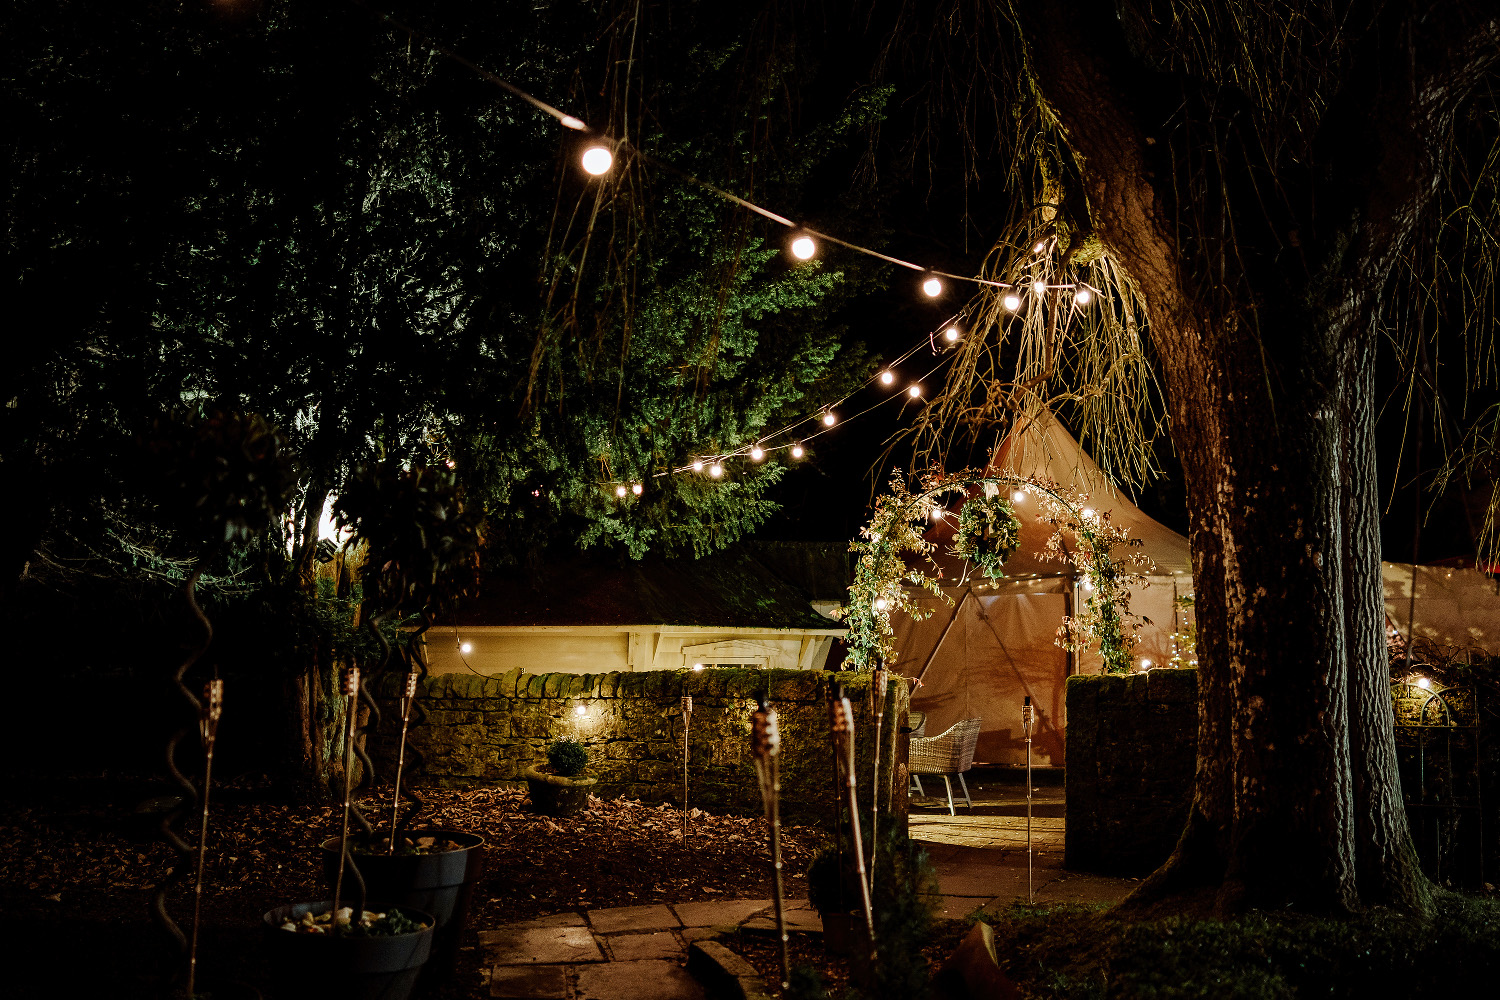 tepee lit up by fairylights